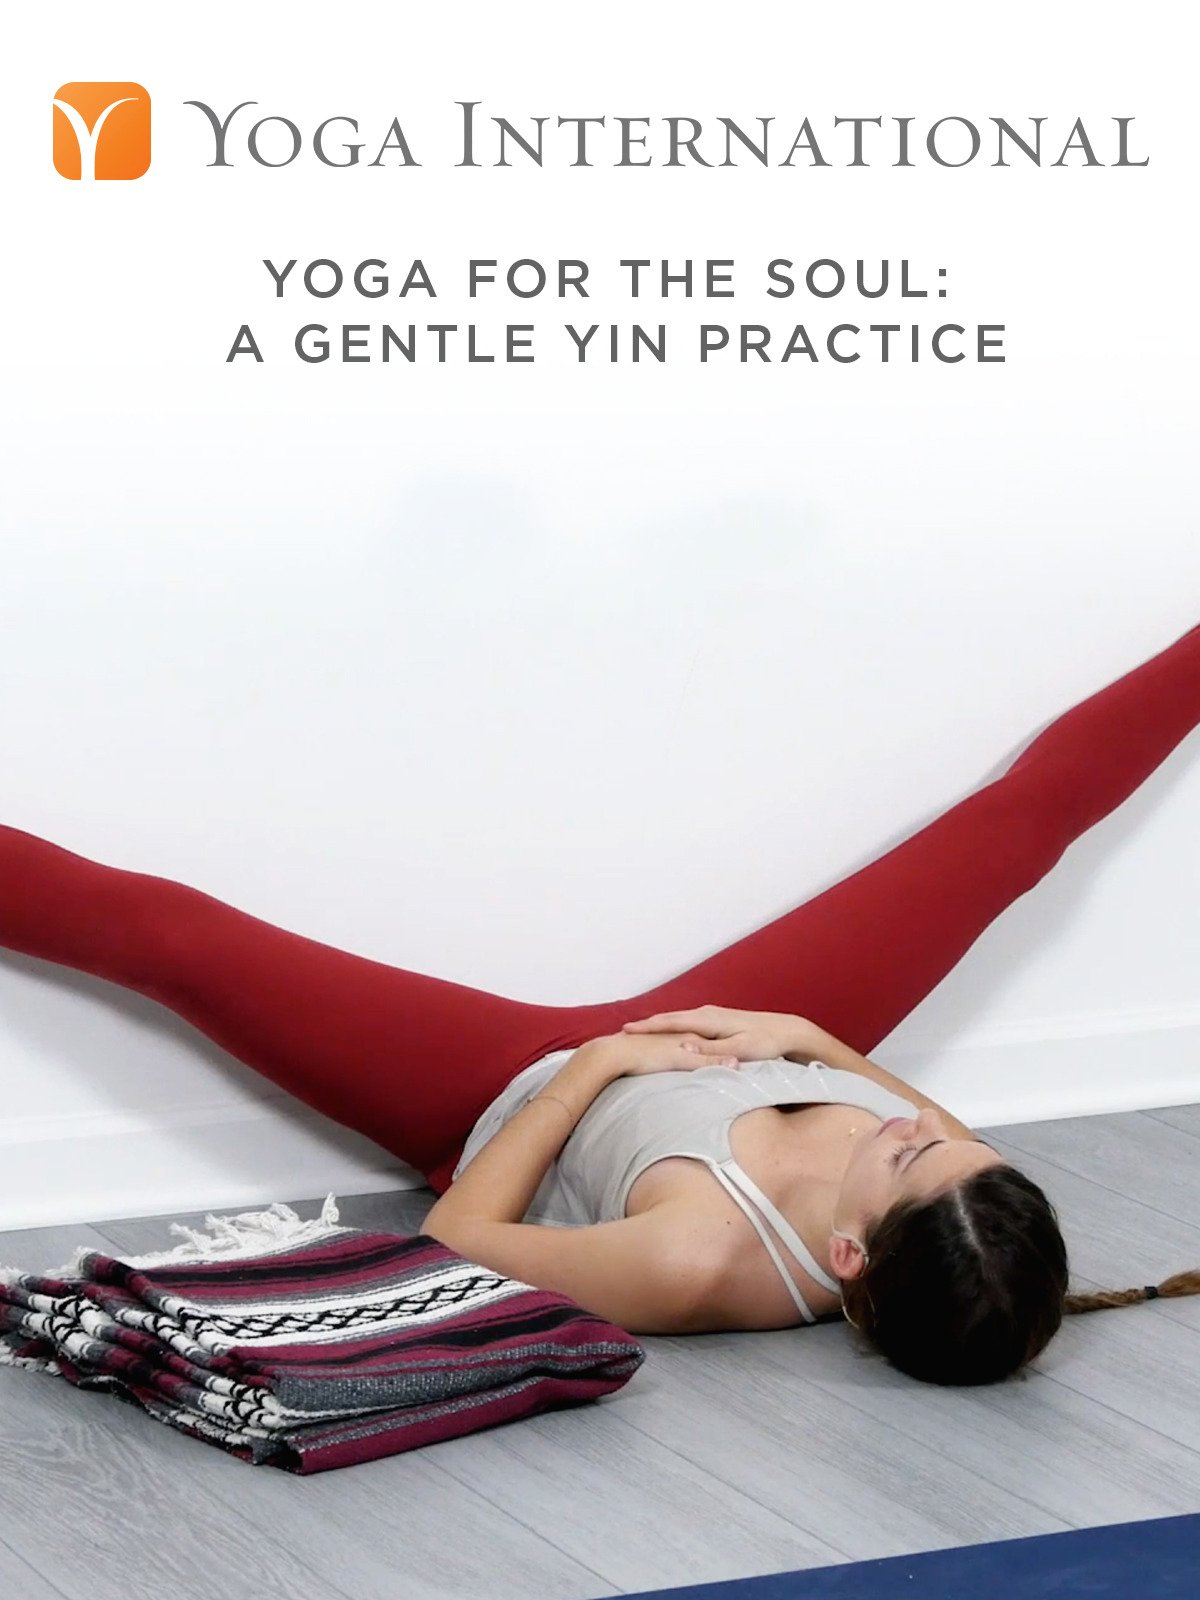 Yoga for the Soul: A Gentle Yin Practice